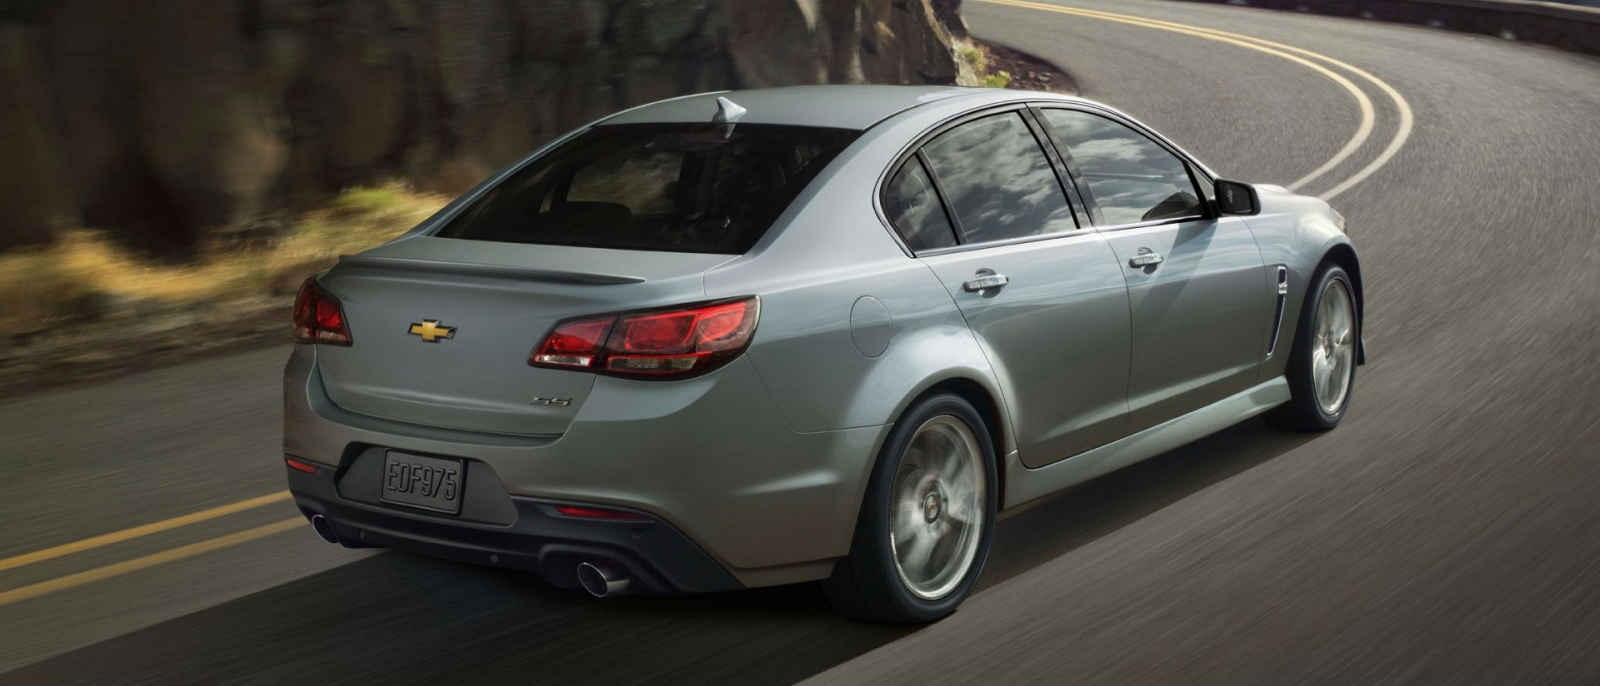 2014 Chevy SS Back Exterior Image